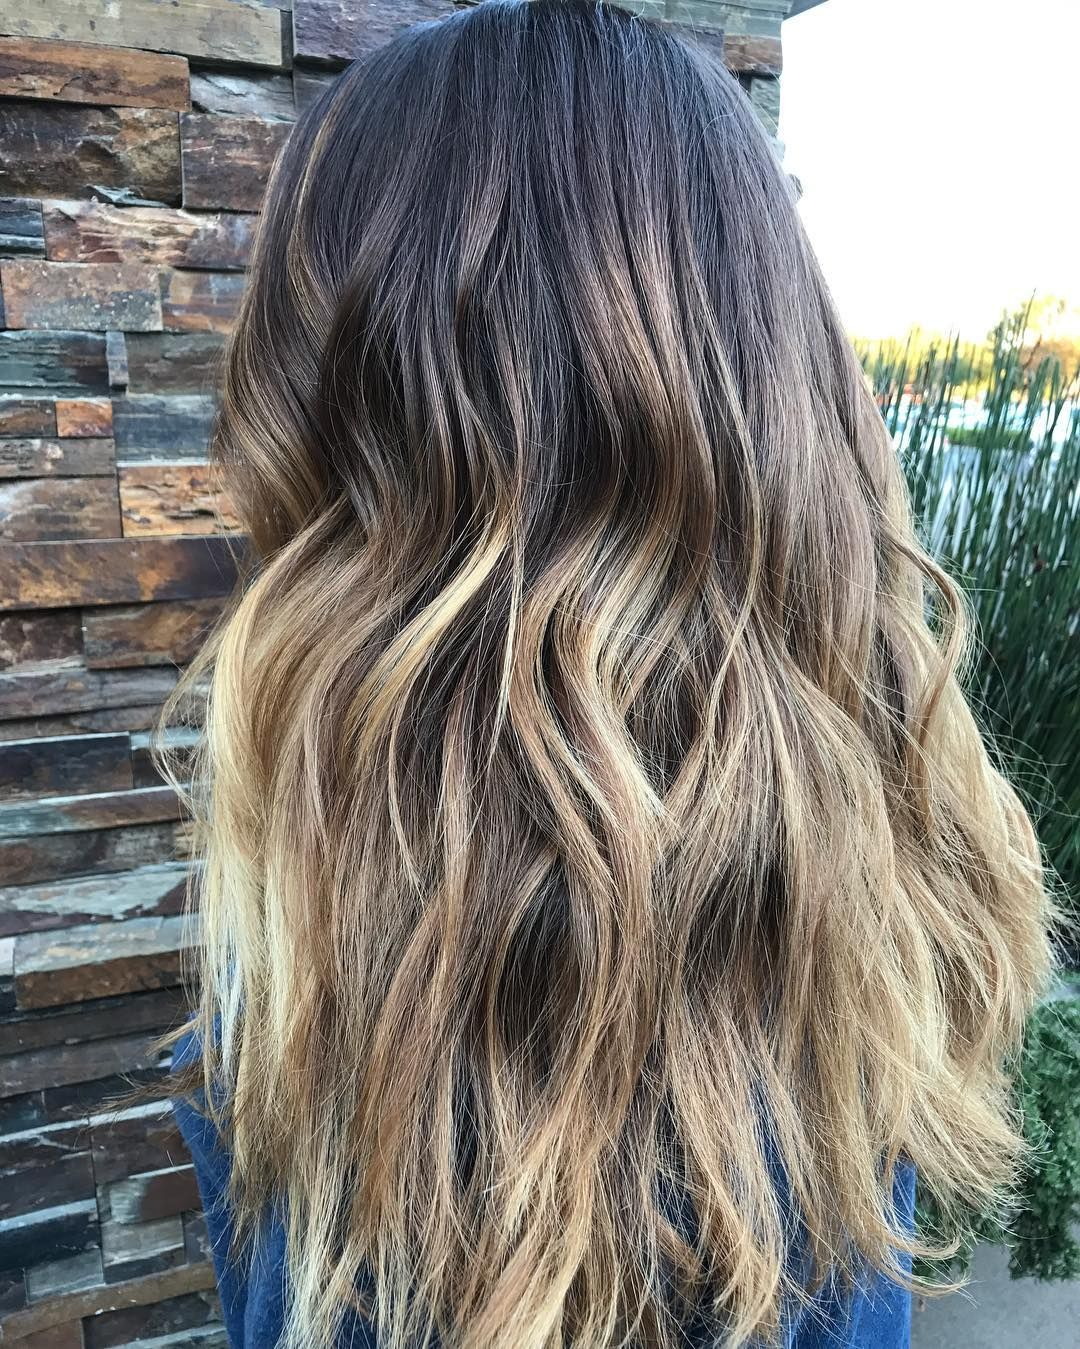 Dark Brown Naturally Wavy Hair With Buttery Blonde Balayage Brown Blonde Hair Brown Hair With Blonde Balayage Balayage Hair Blonde